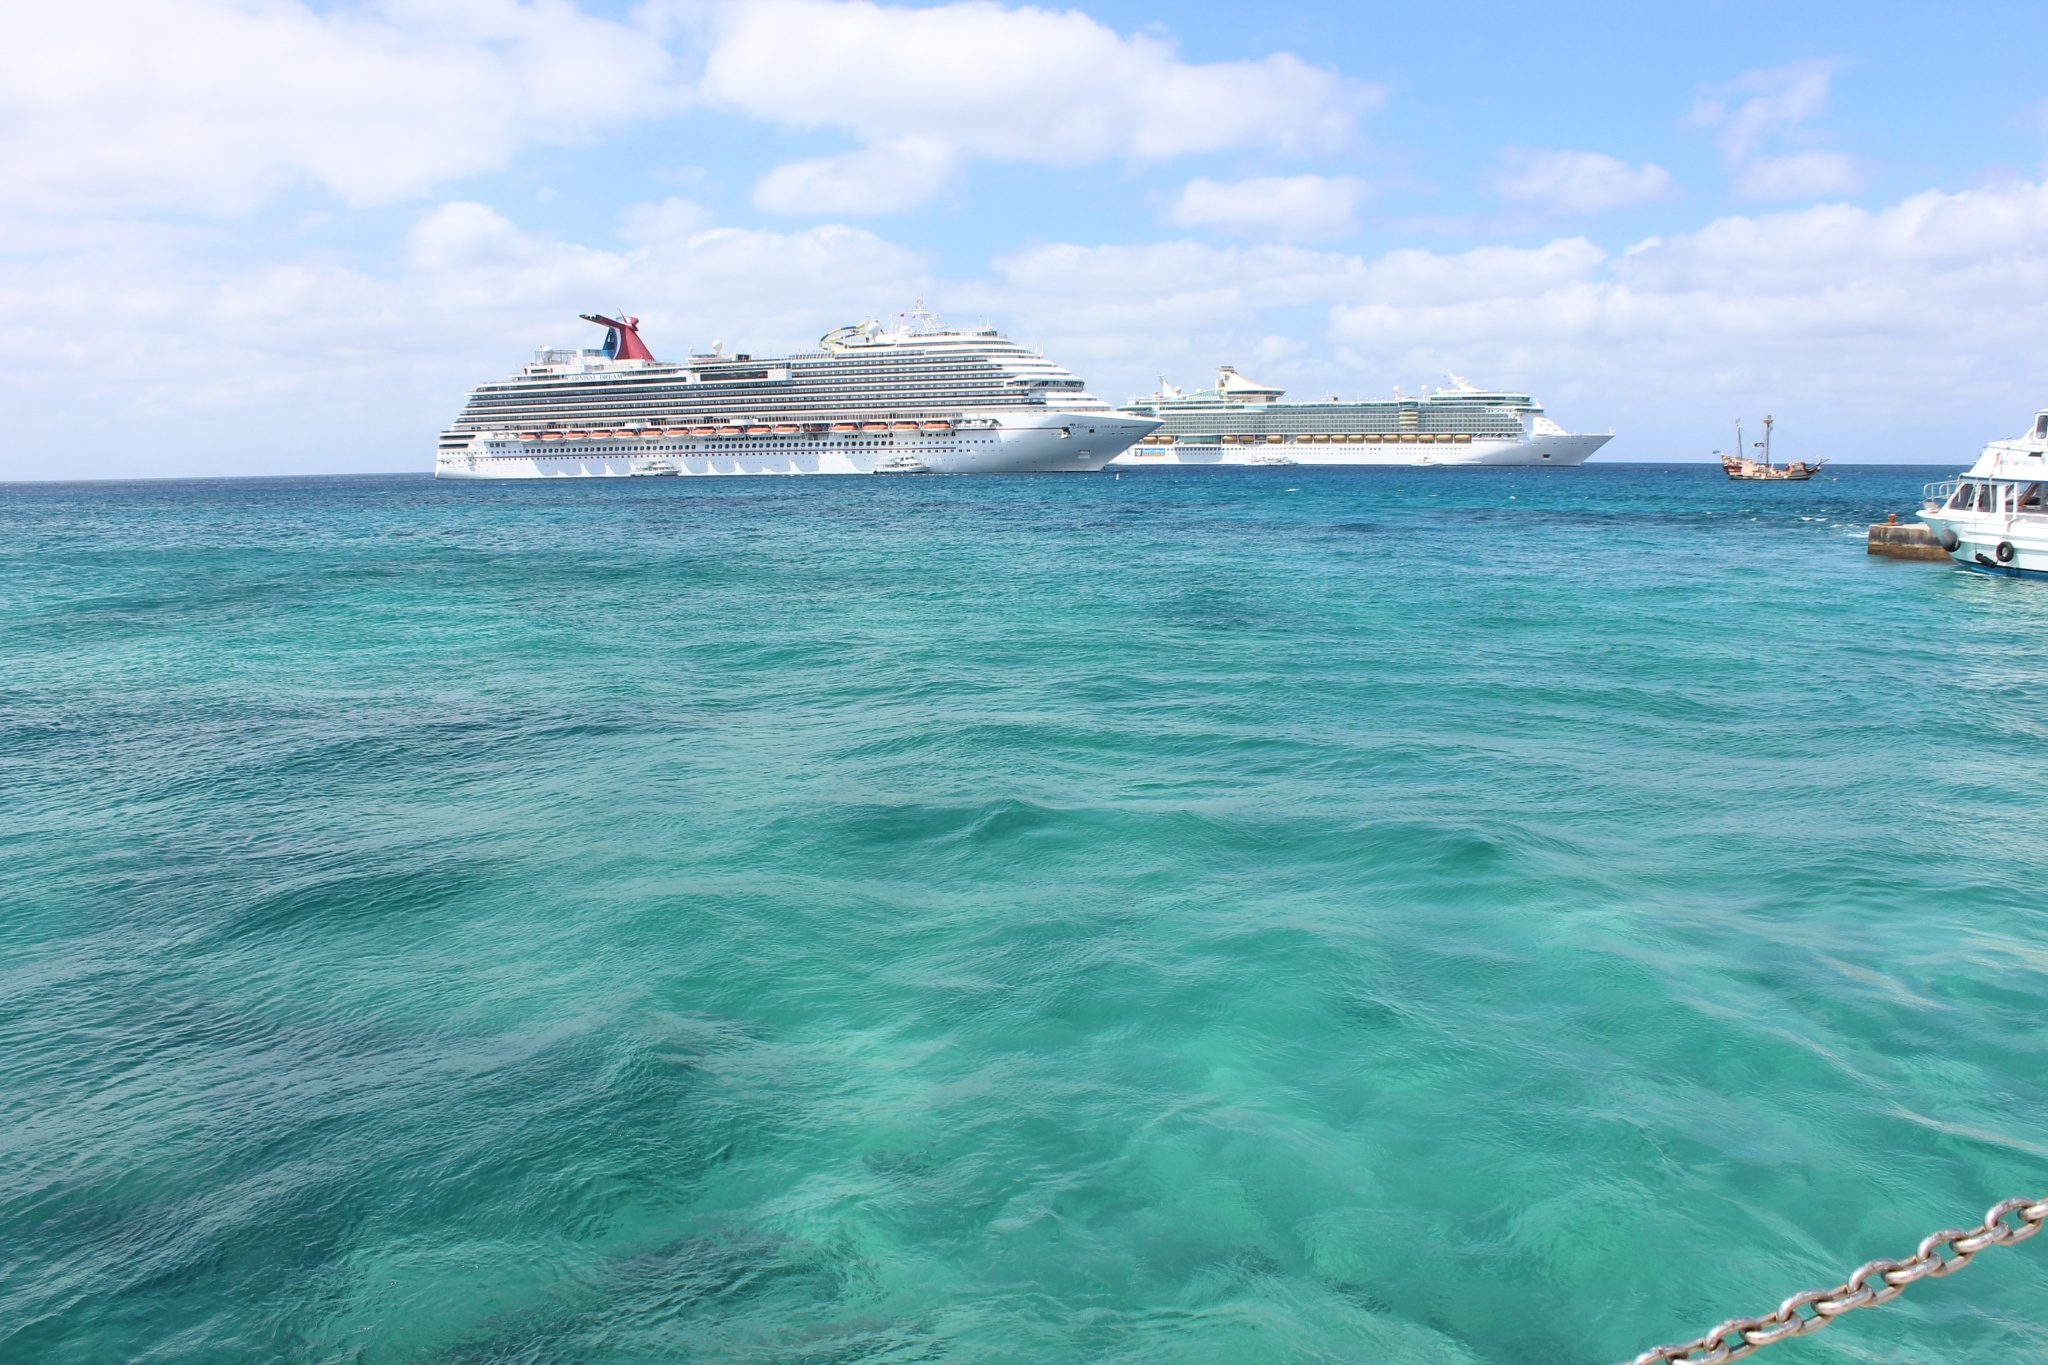 Tendering in Grand Cayman by PennypHall